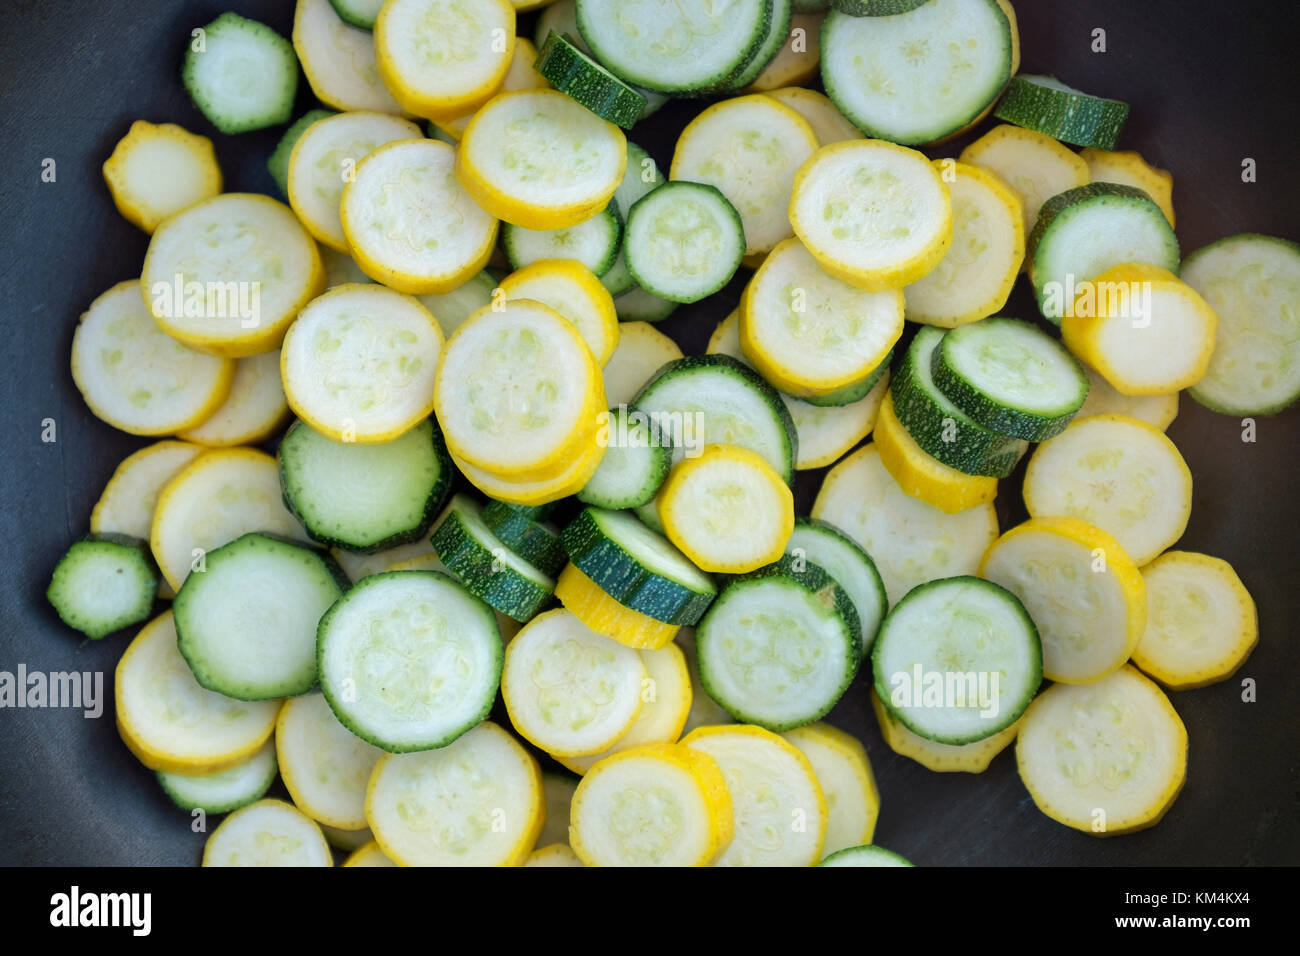 Sliced fresh zucchini courgette vegetables with green and yellow skins in a frying pan. - Stock Image